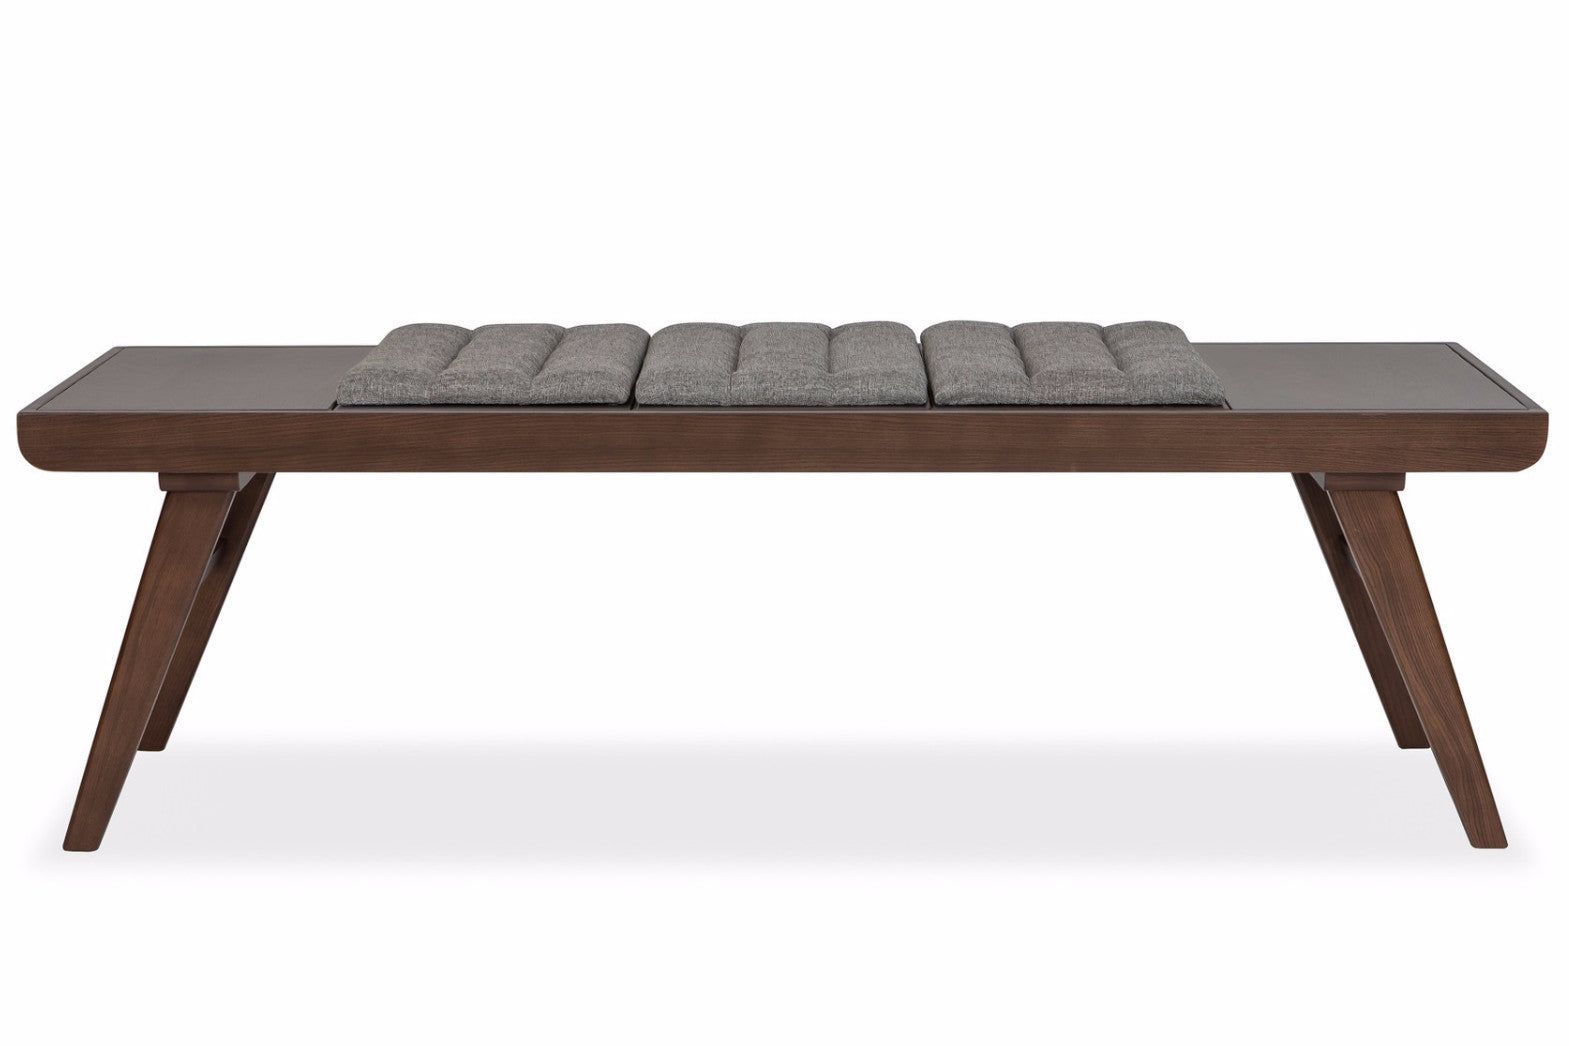 Bedroom Benches - Wood, Leather & Upholstered Benches – Apt2B